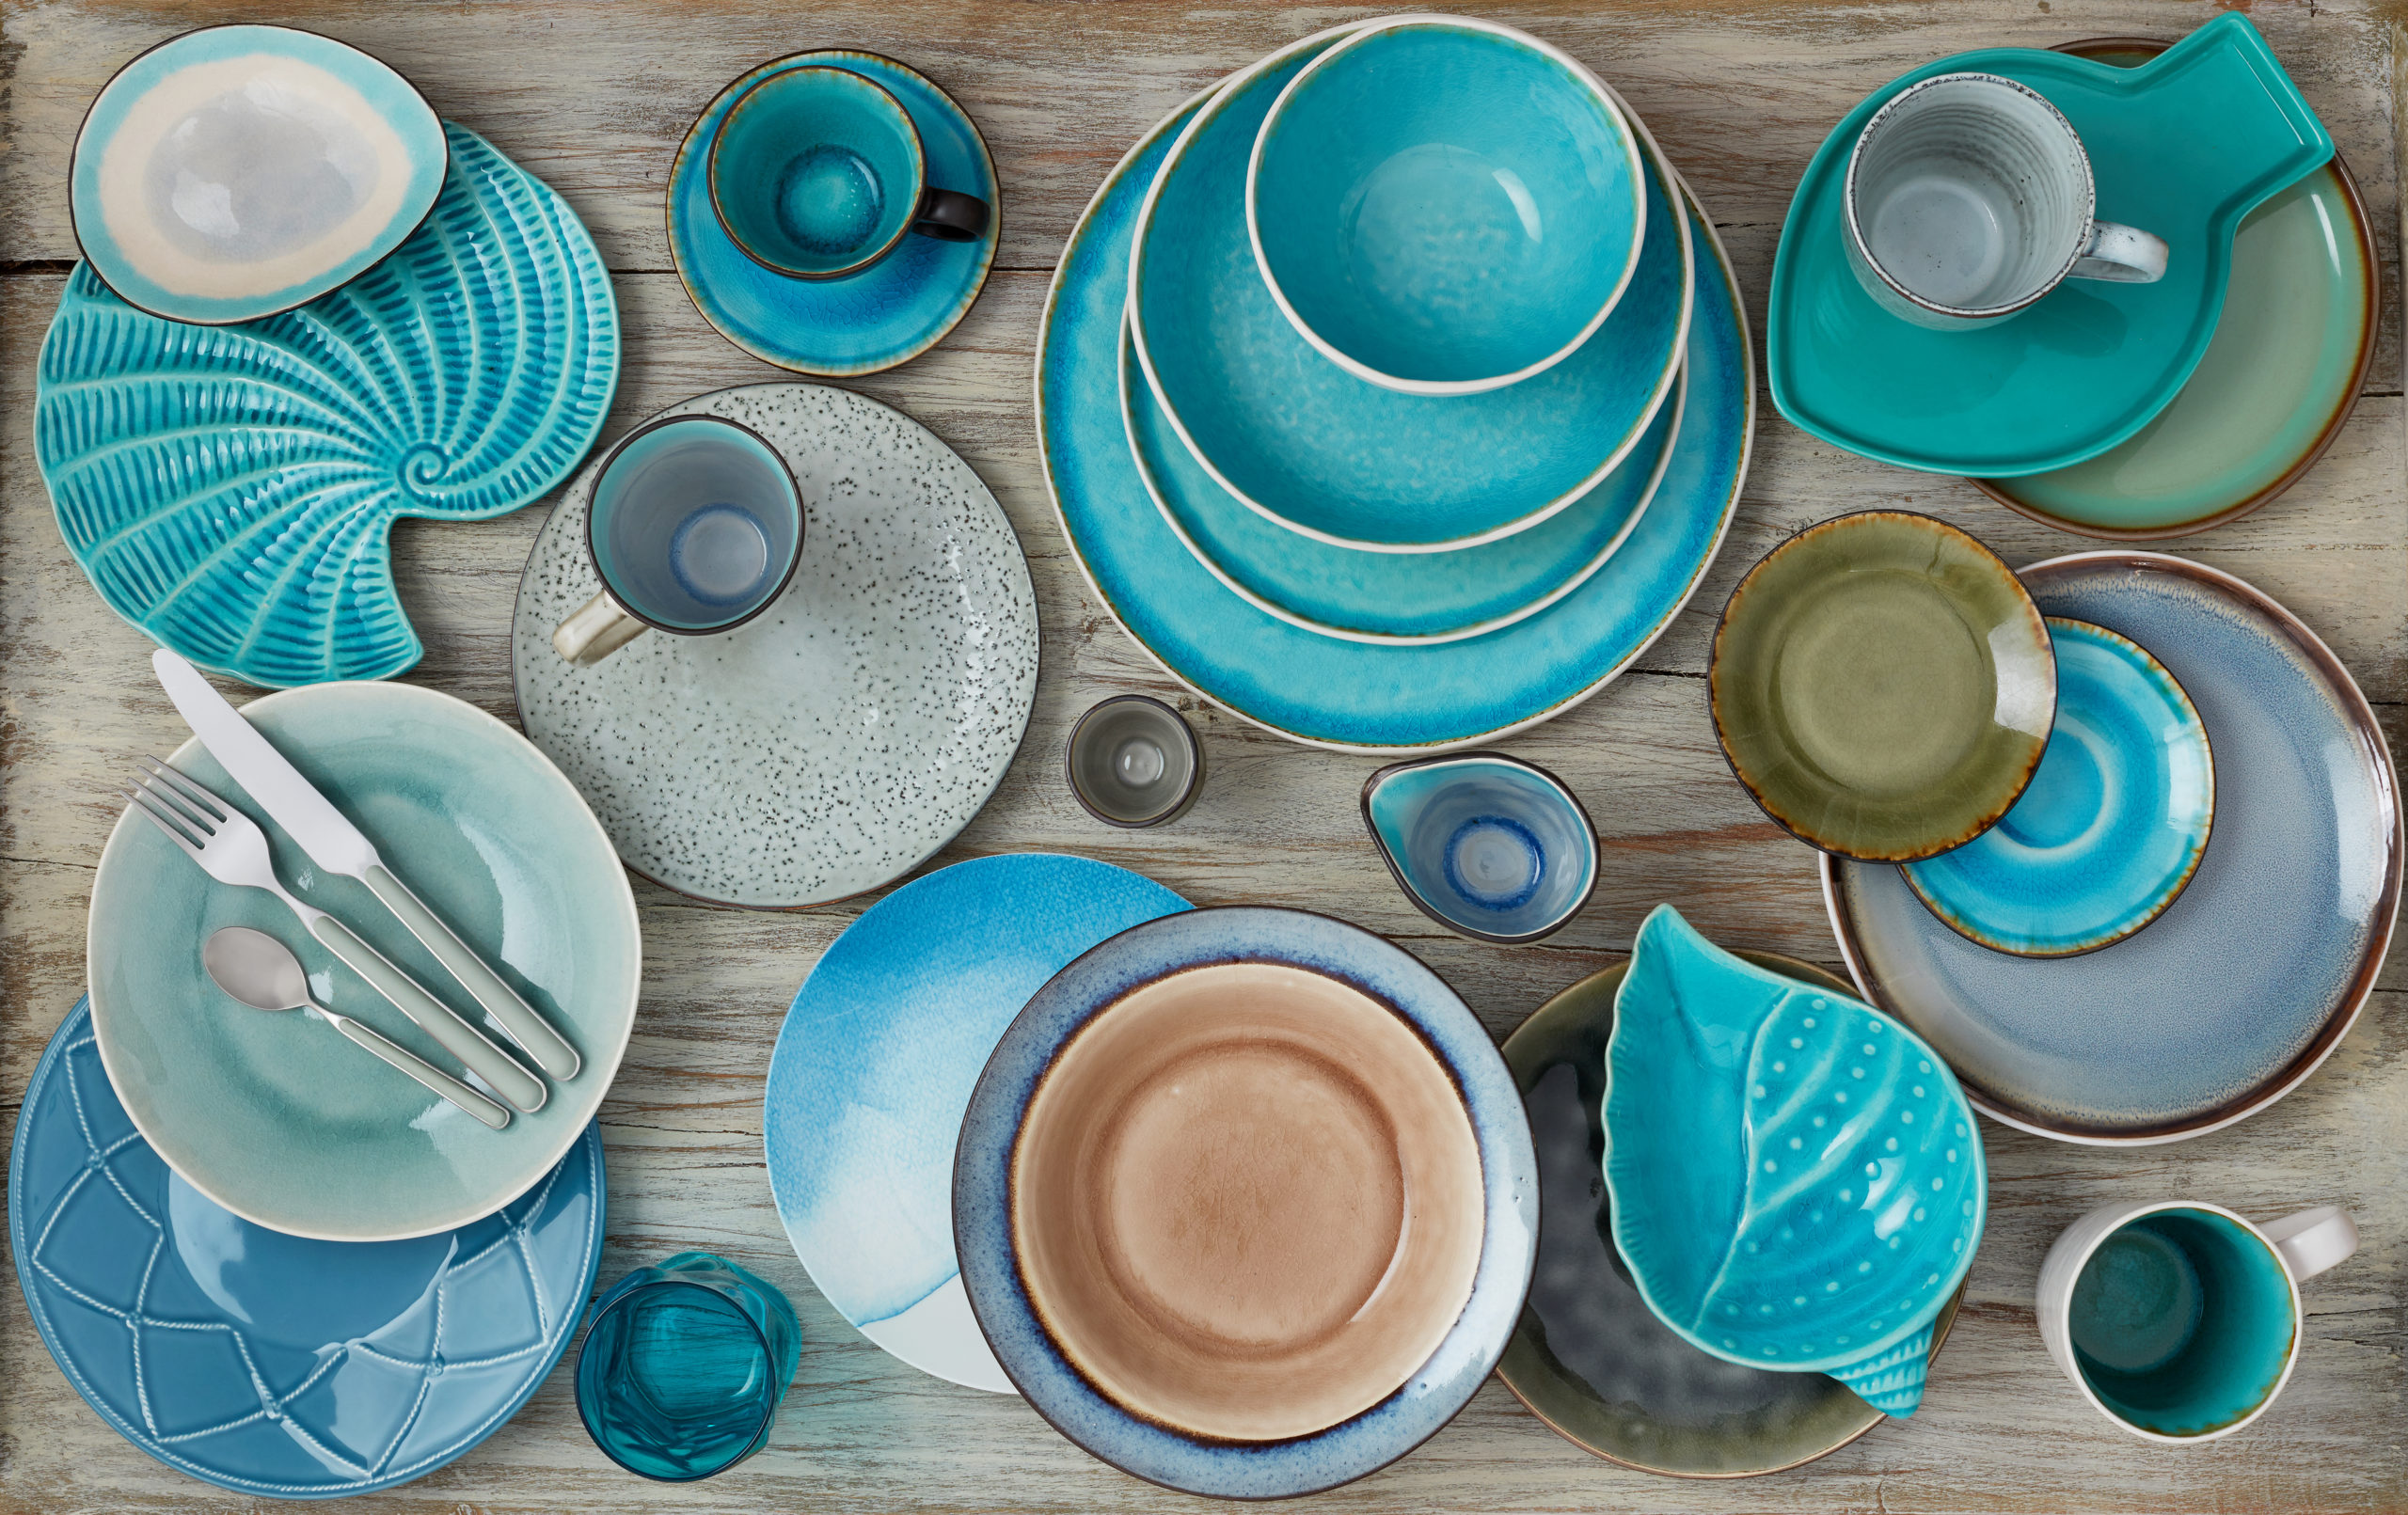 An assortment of teal pottery on a table.